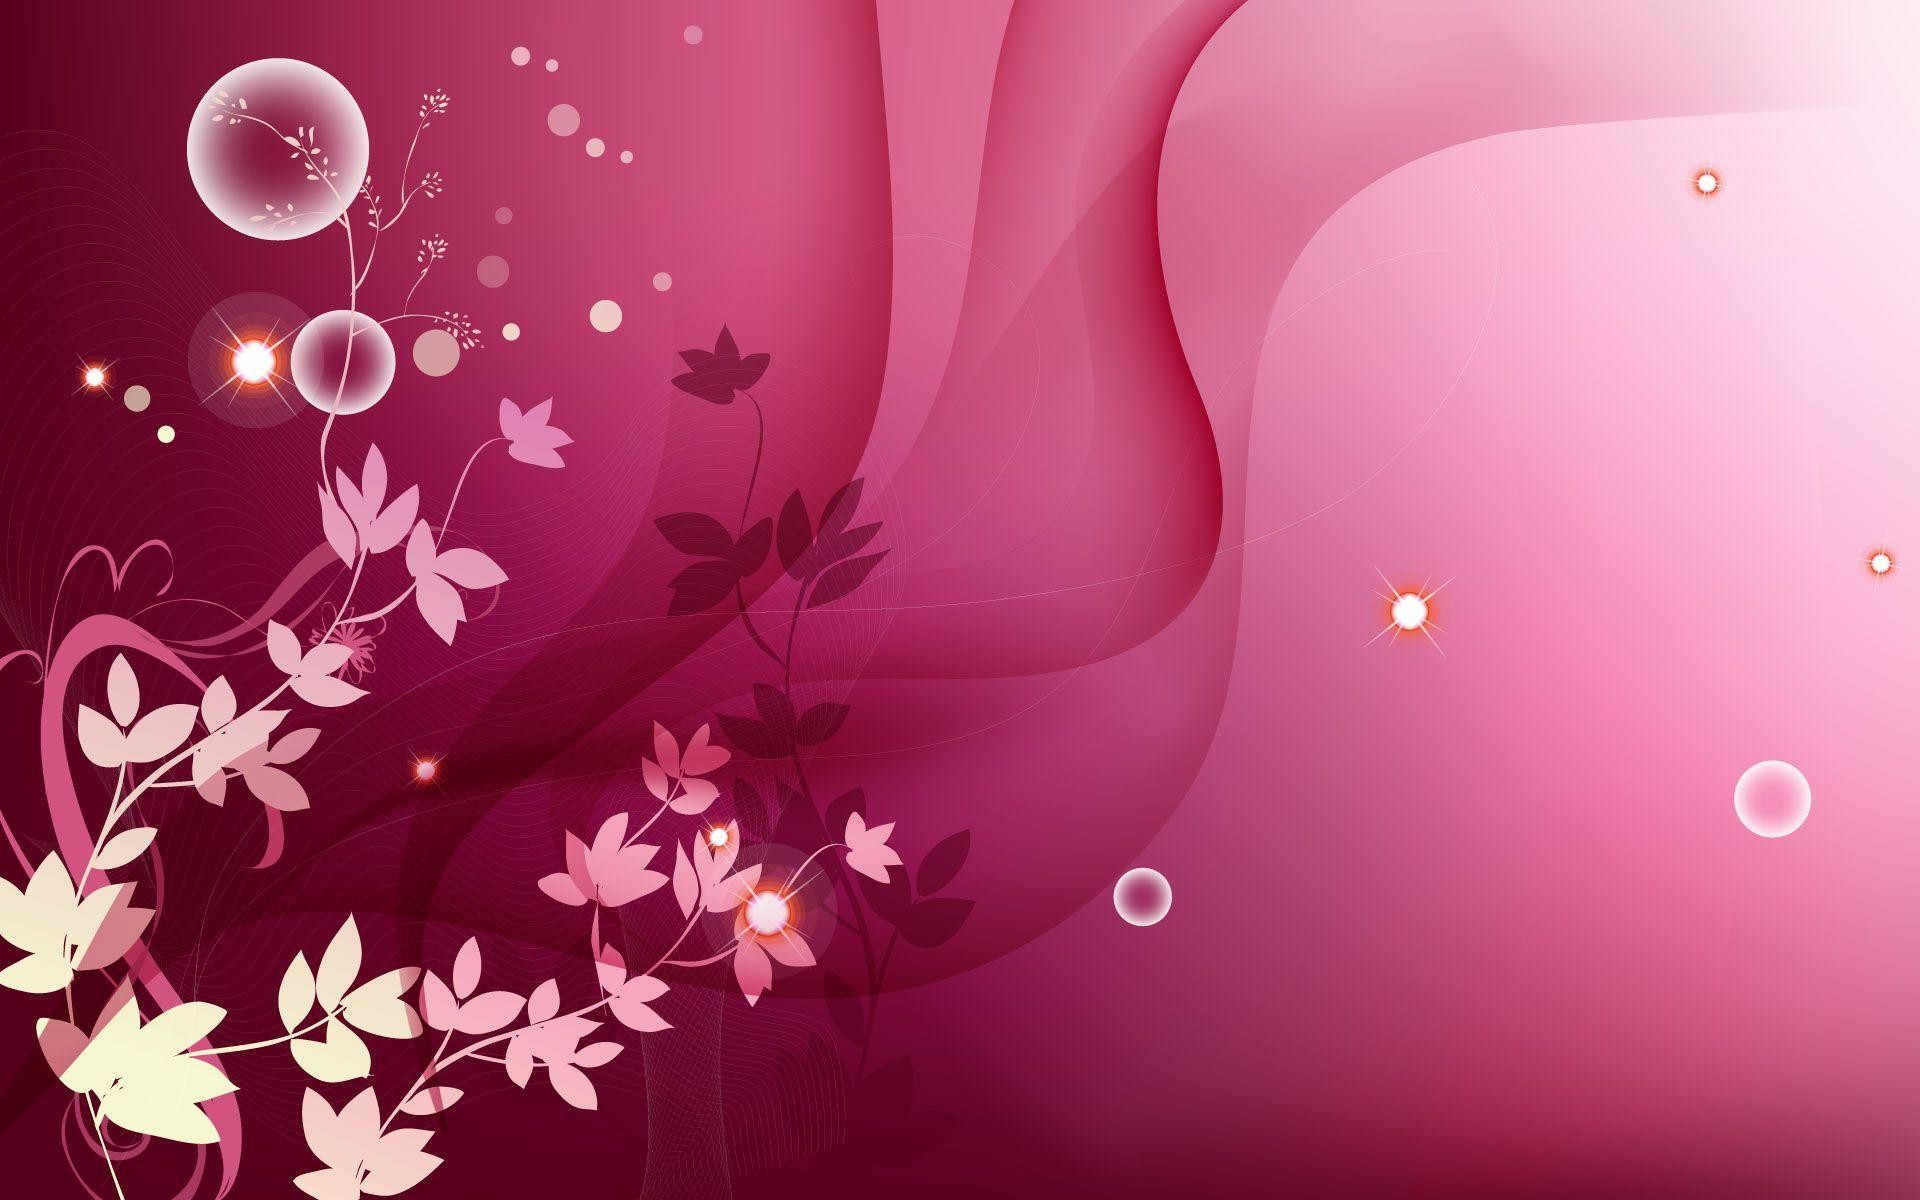 Wallpapers For > Cute Pink Wallpaper For Ipad